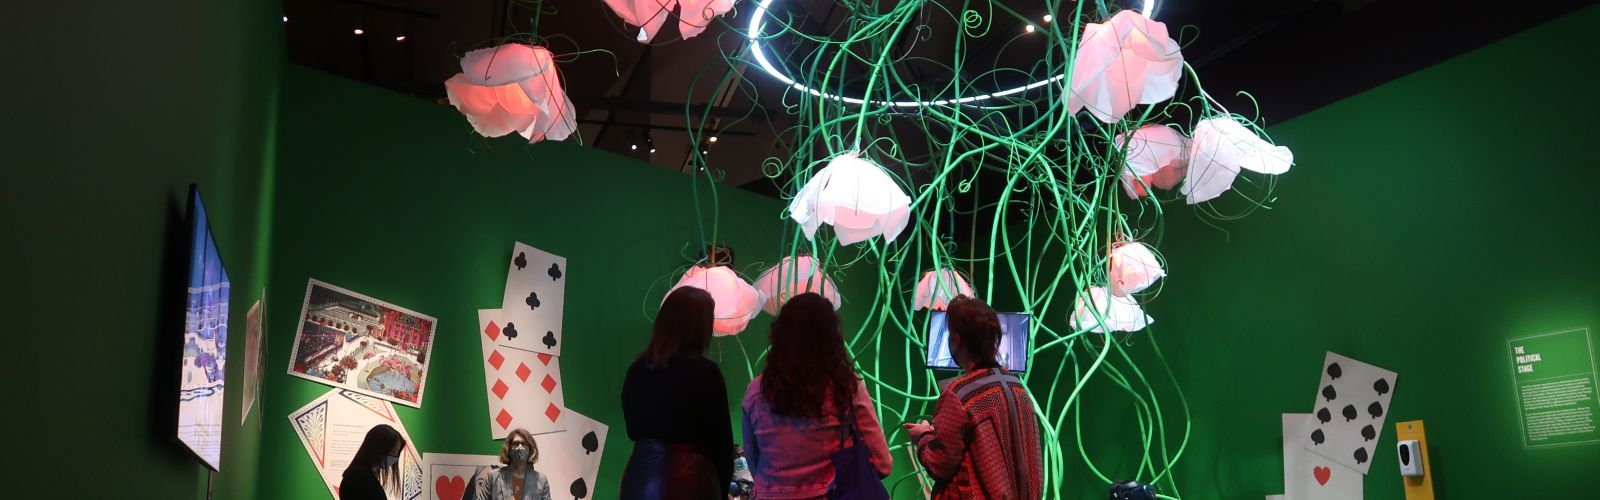 Exhibitions in London - Alice_ Curiouser and Curiouser at the V&A - HERO CREDIT Minka Guides